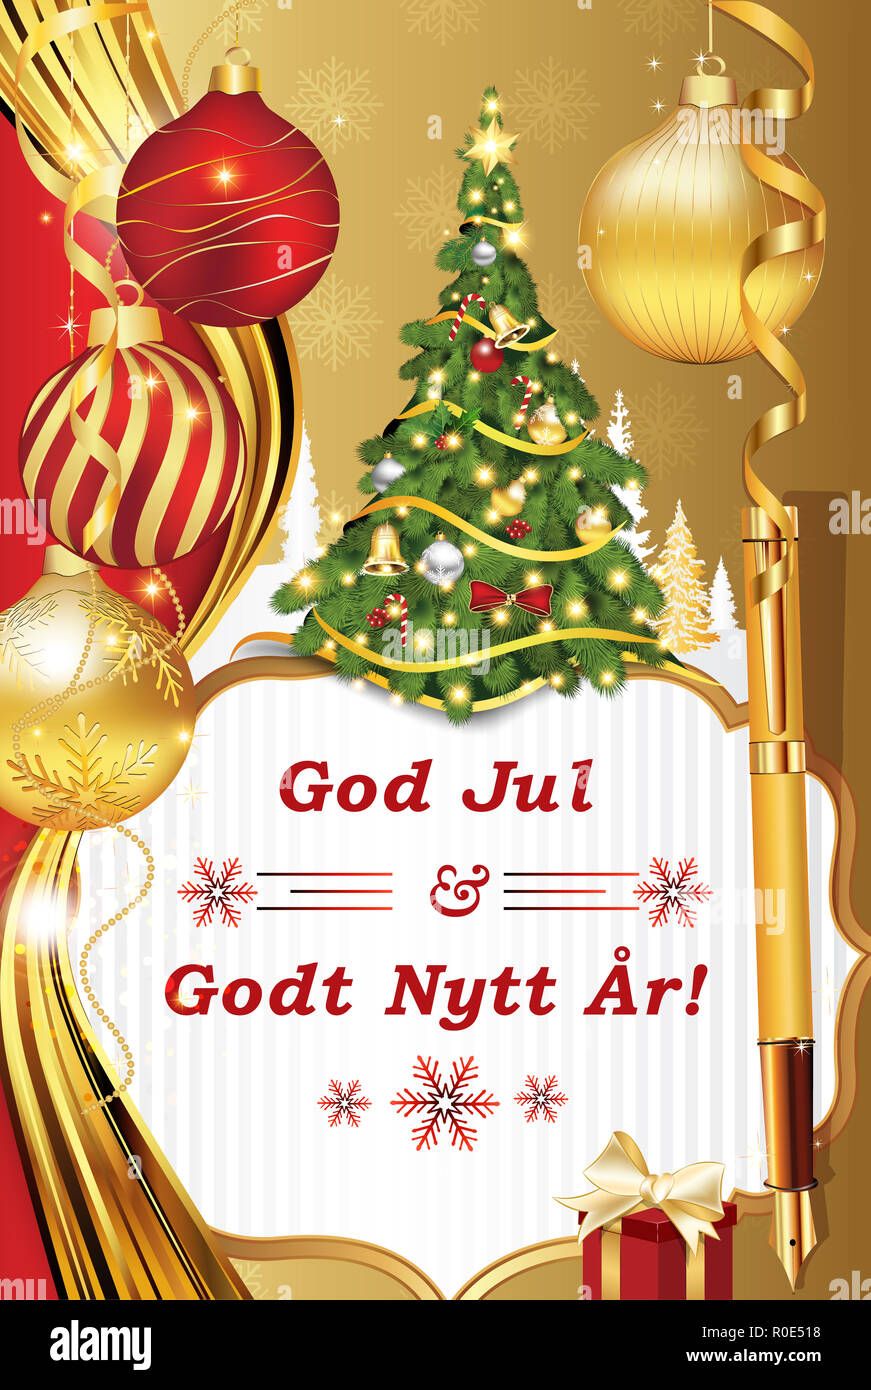 Merry Christmas In Norwegian.Greeting Card With Message Merry Christmas And Happy New